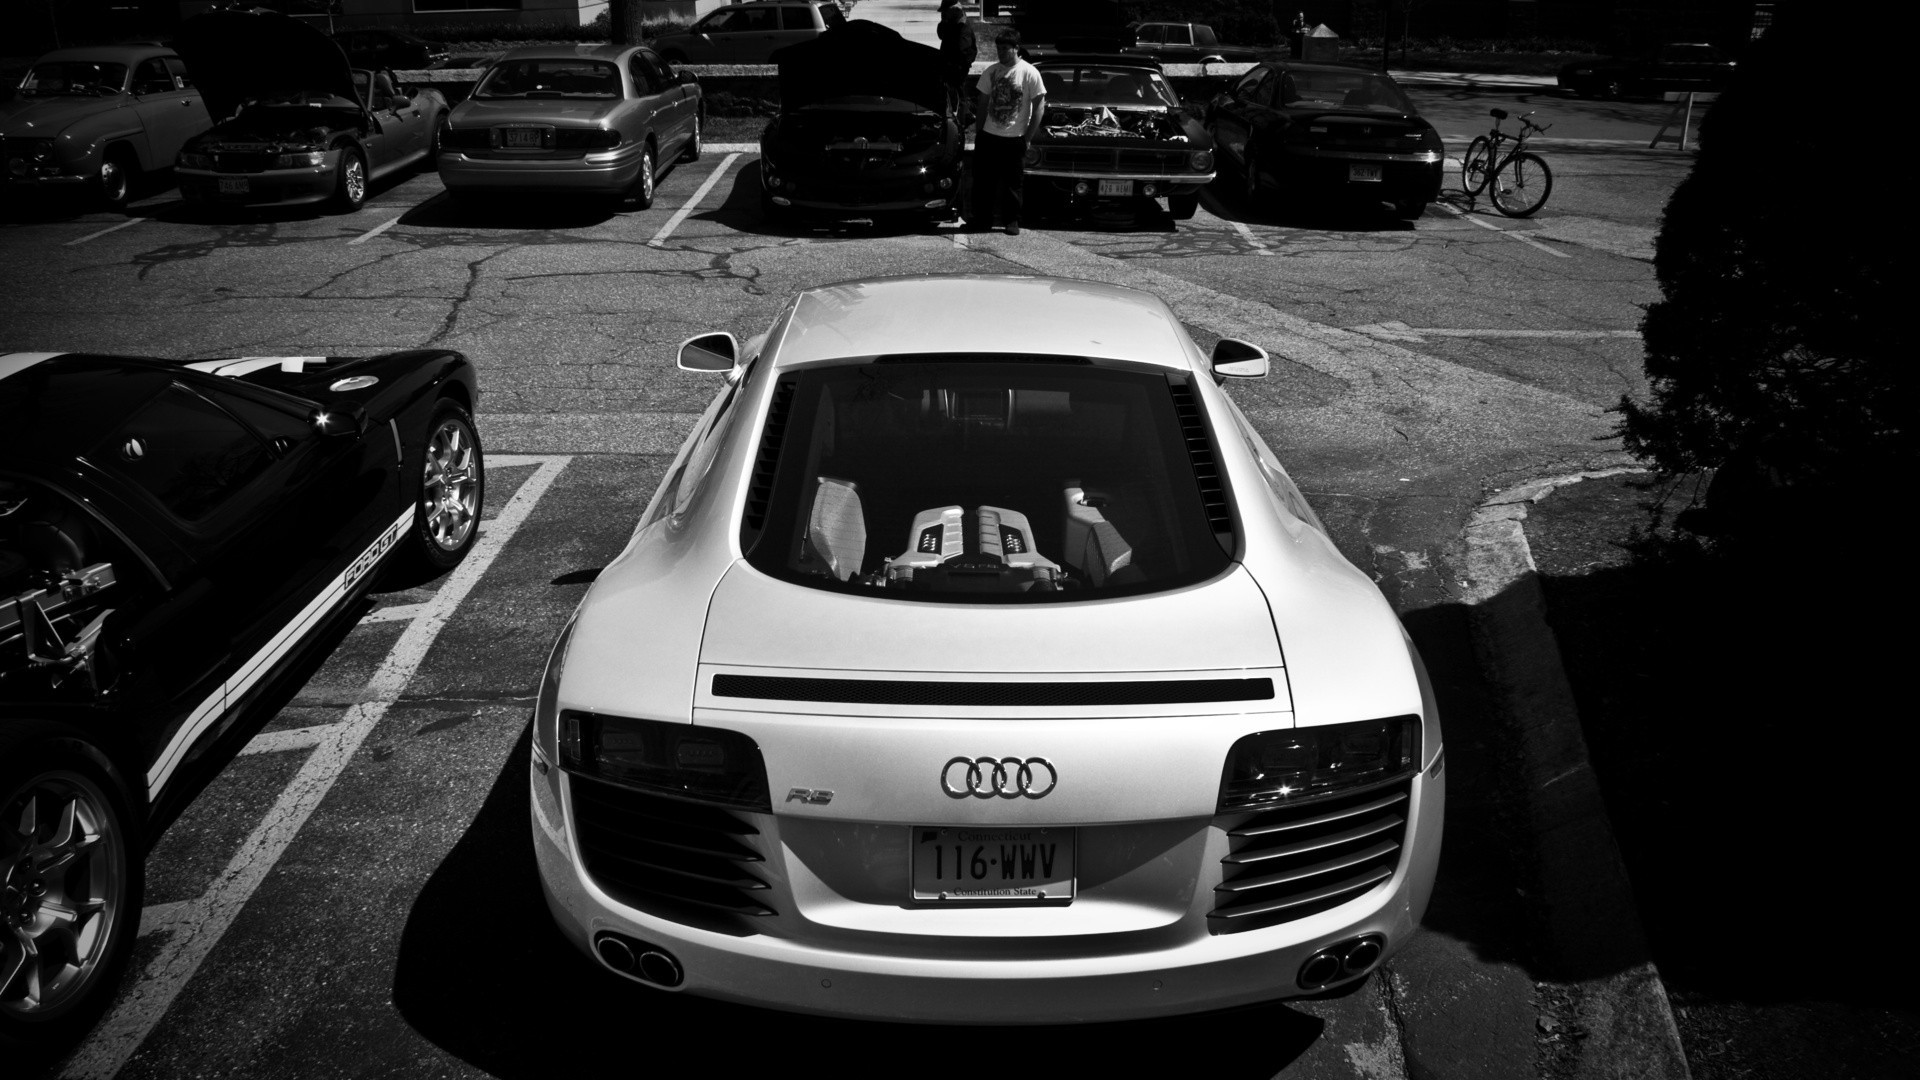 cars Audi monochrome HD Wallpaper